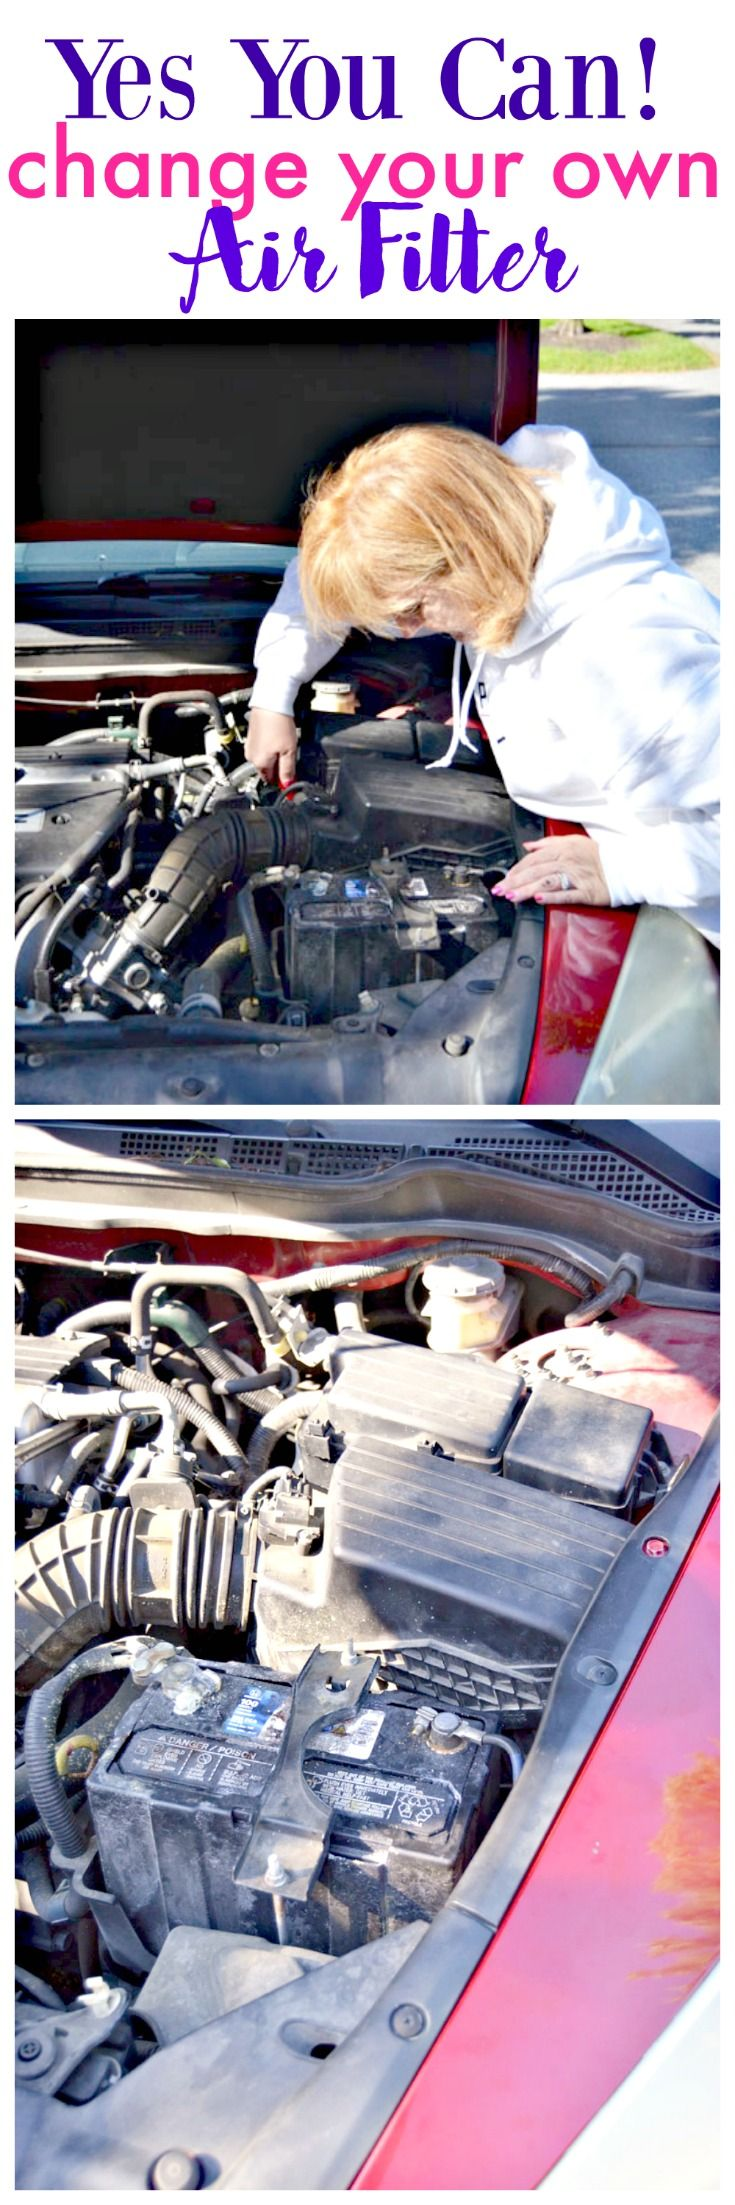 How to Change Your Car's Air Filter  Here's a super easy DIY: change your car's air filter - I'll show you how! #SummerCarCare #ad